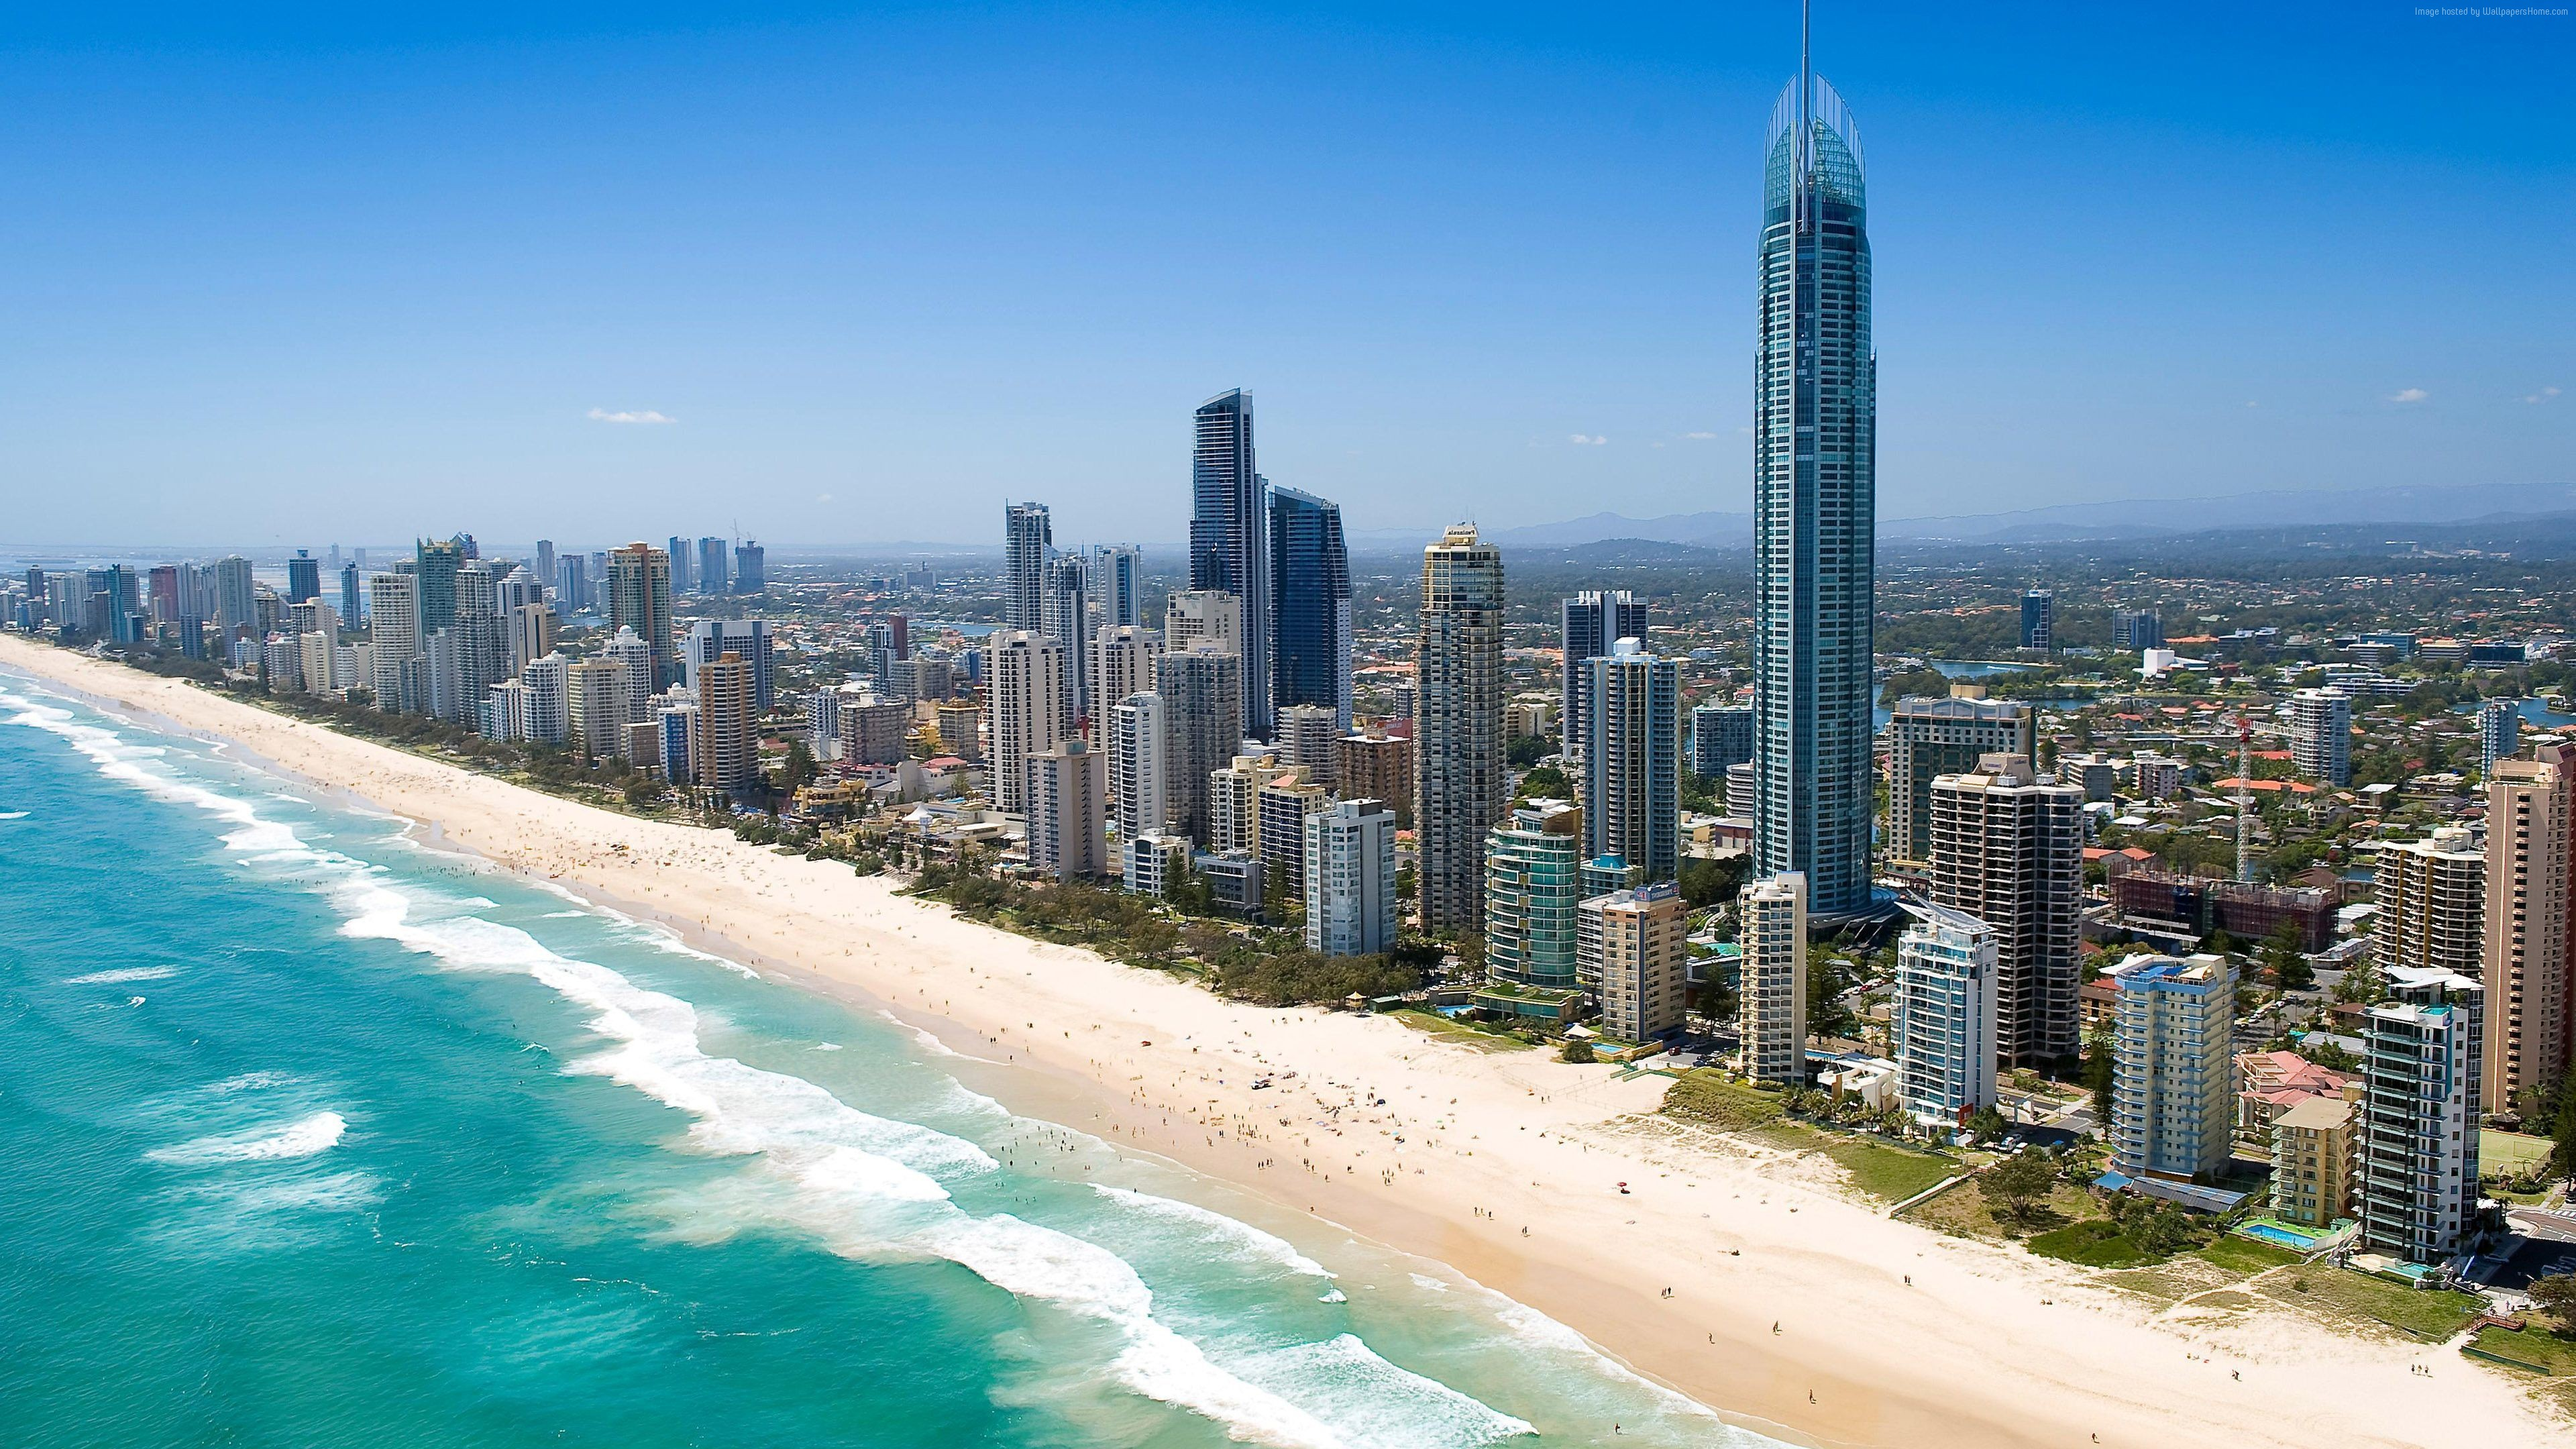 Wallpaper Queensland, 5k, 4k wallpaper, Australia, Pacific ocean, shore, Best Beaches in the World, skyscrapers, Travel